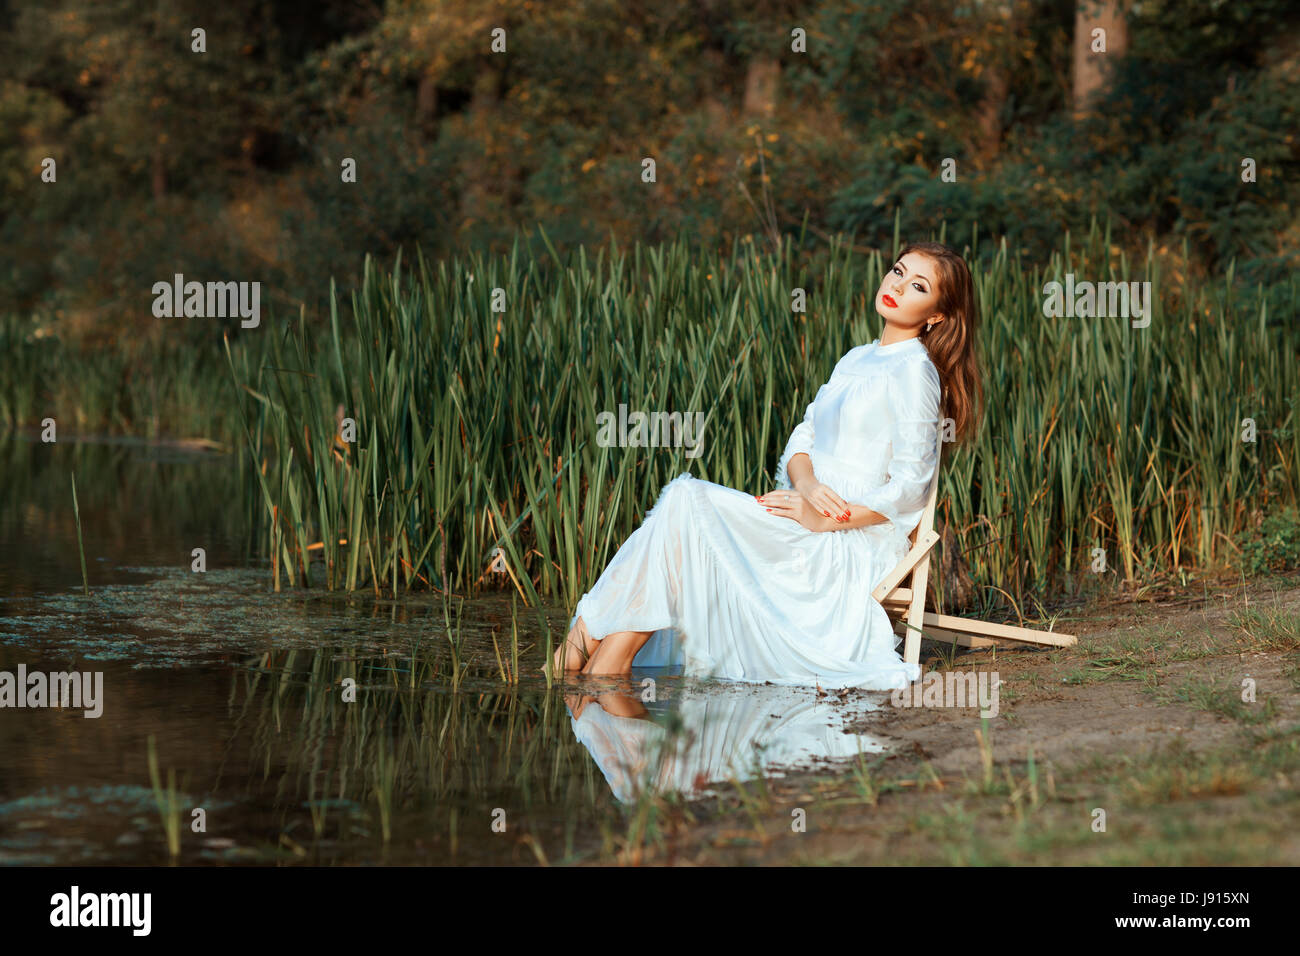 Girl in a white dress sitting dipping feet in the lake. This a summer day. - Stock Image